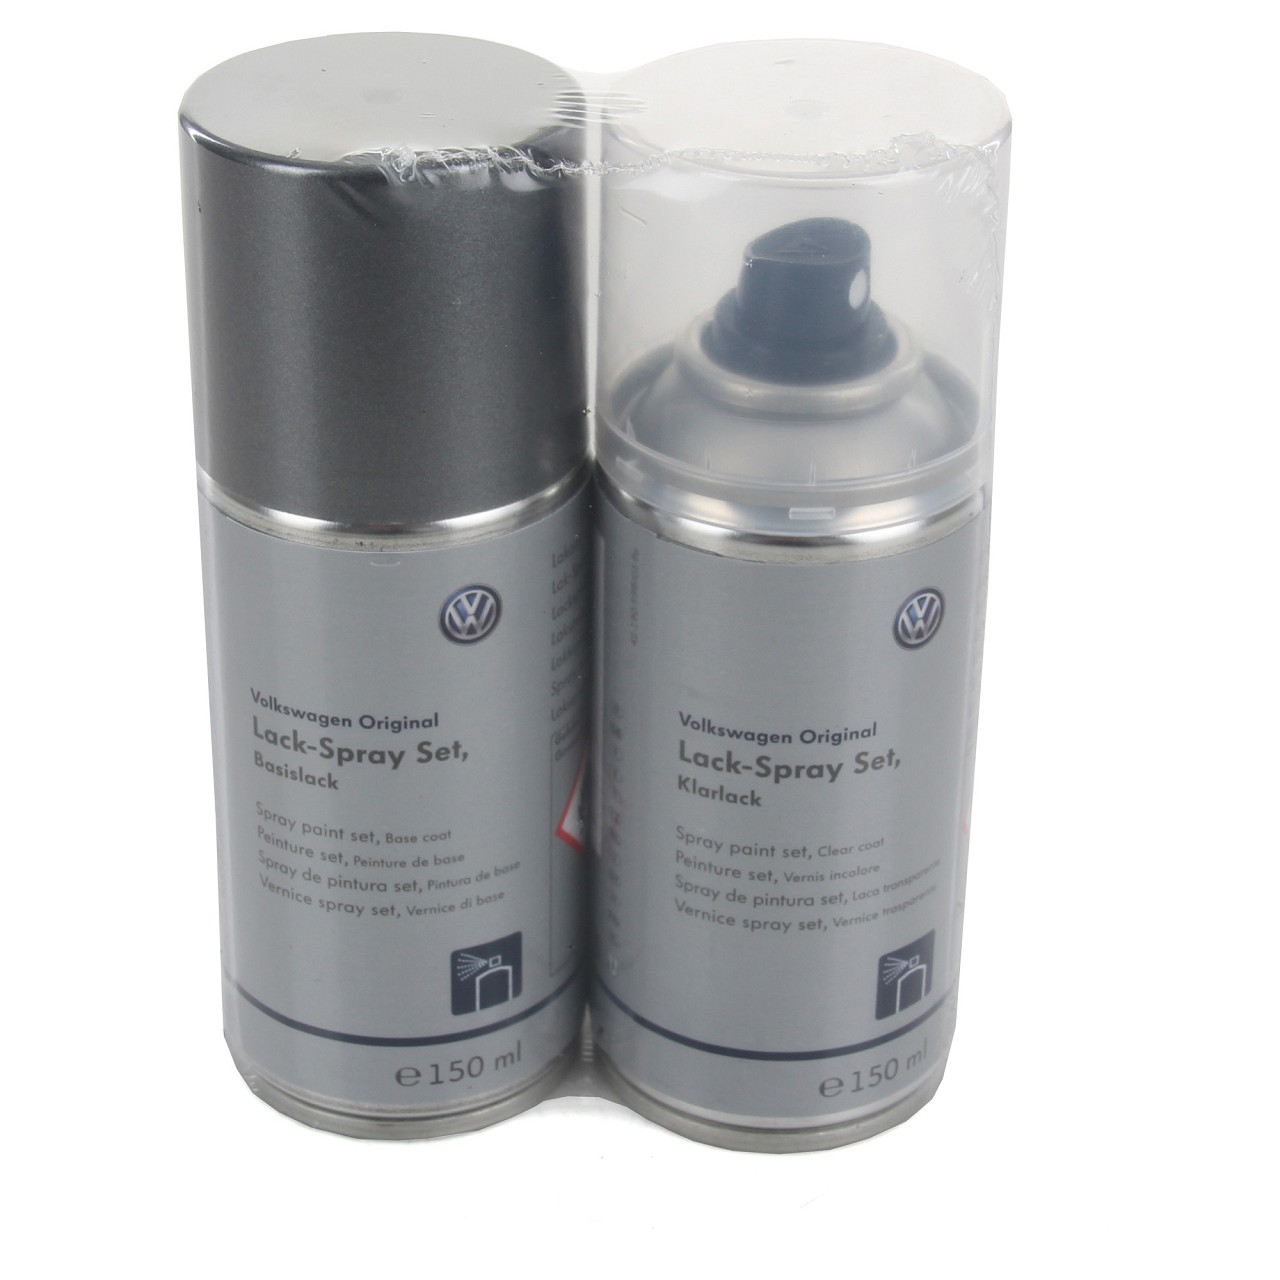 ORIGINAL VW AUDI Autolack Lackspray Set UNITEDGREY METALLIC LLS0M6A7T LA7T